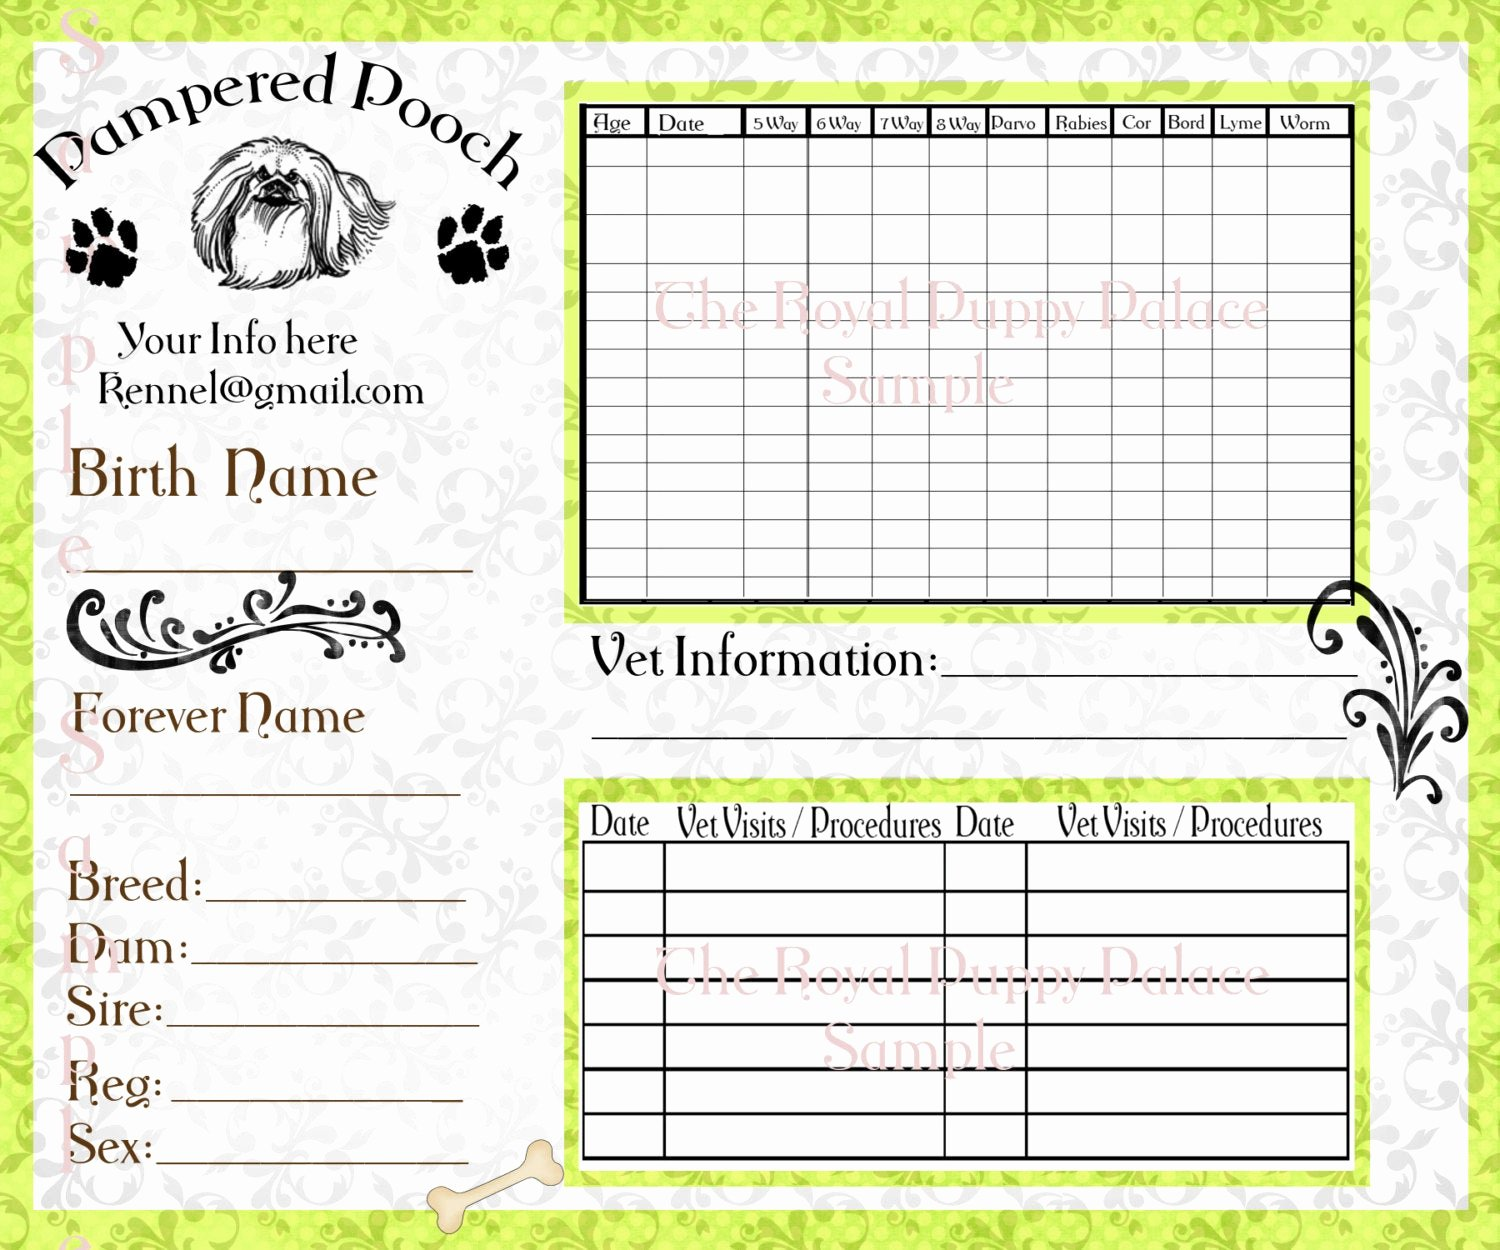 Dog Vaccination Record Template New Pampered Pooch Green Customizable Vaccination Cards for Dog